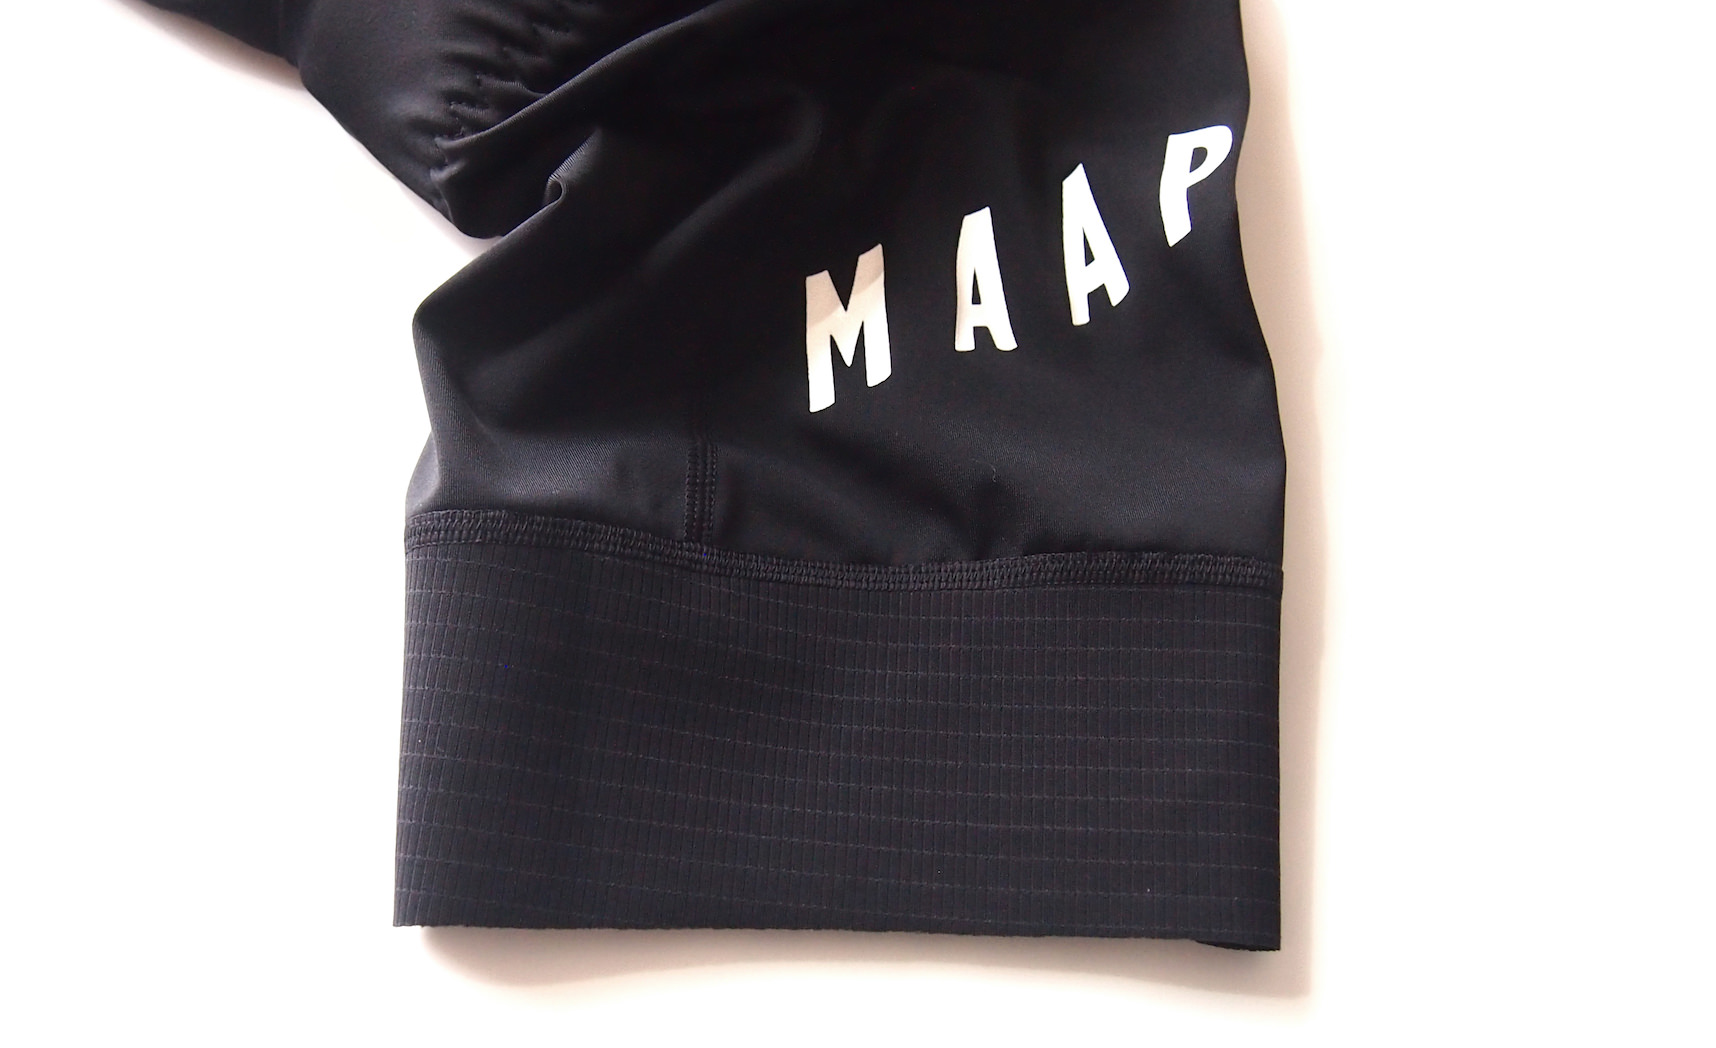 MAAP Team Bib Short 2.0 裾